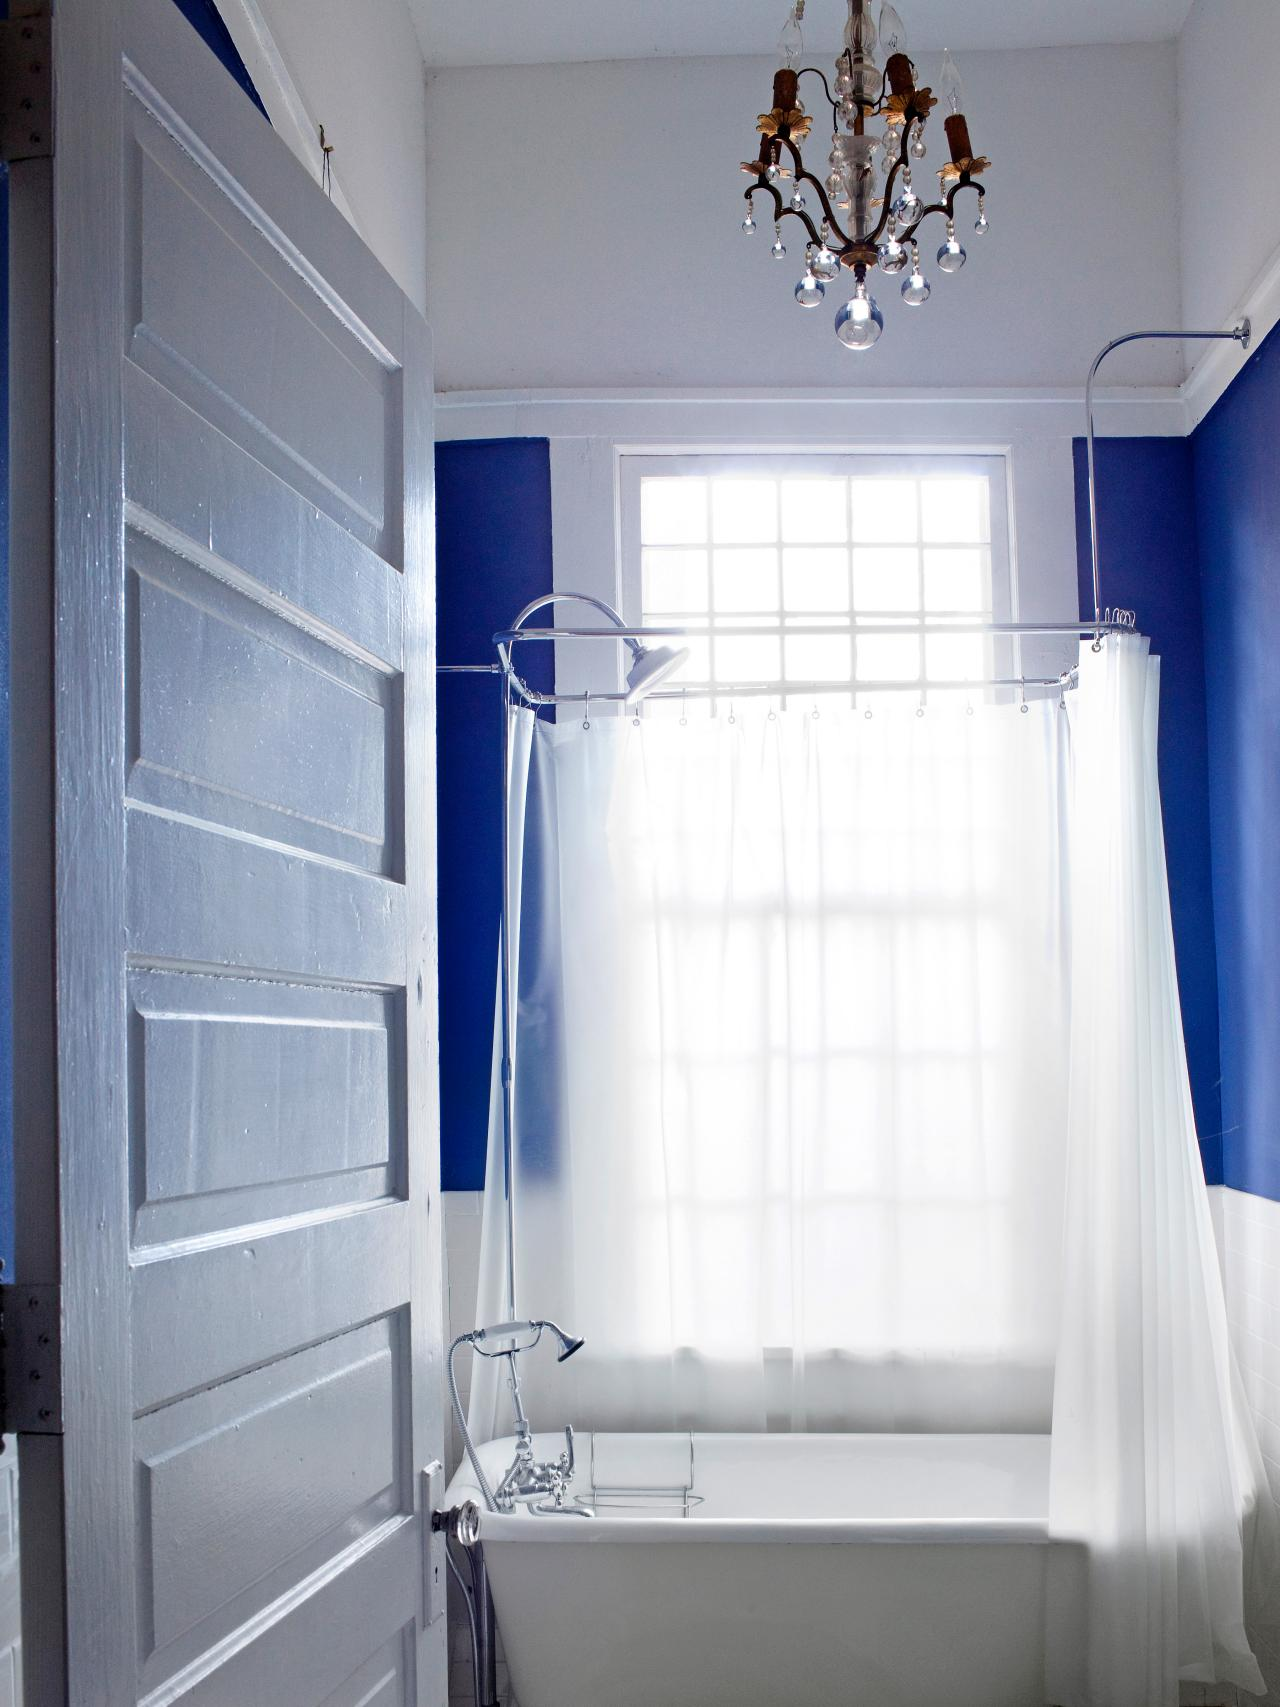 Bathroom Decorating Ideas Blue small bathroom decorating ideas | hgtv